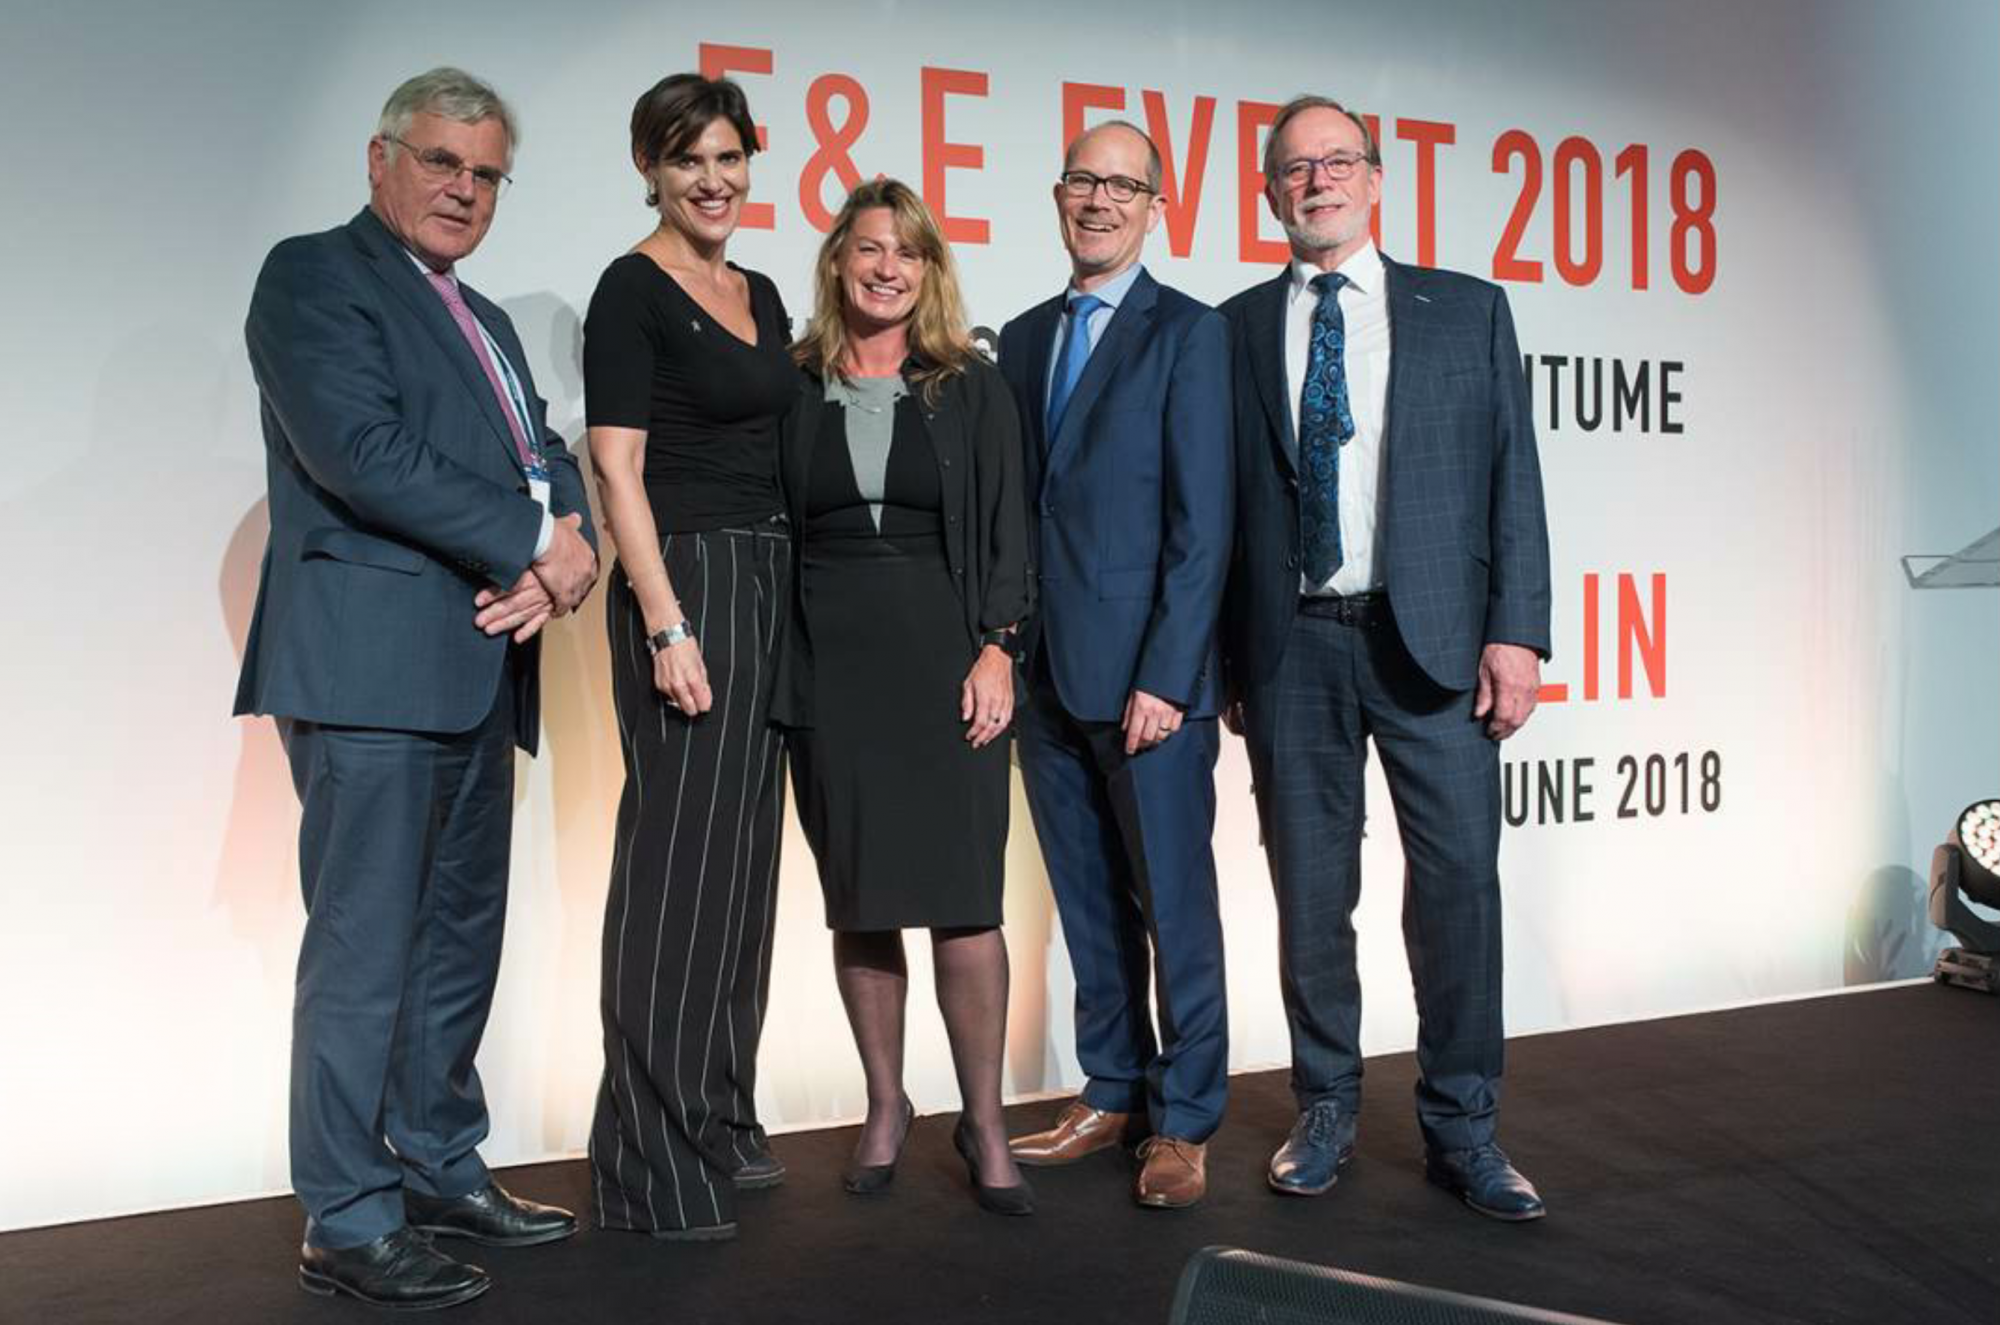 From left to right, former Eurobitume Director General Aimé Xhonneux, Moderator Katrina Sichel, Eurobitume Director General Siobhan McKelvey, EAPA's current and immediate past Secretary Generals Carsten Karcher and Egbert Beuving